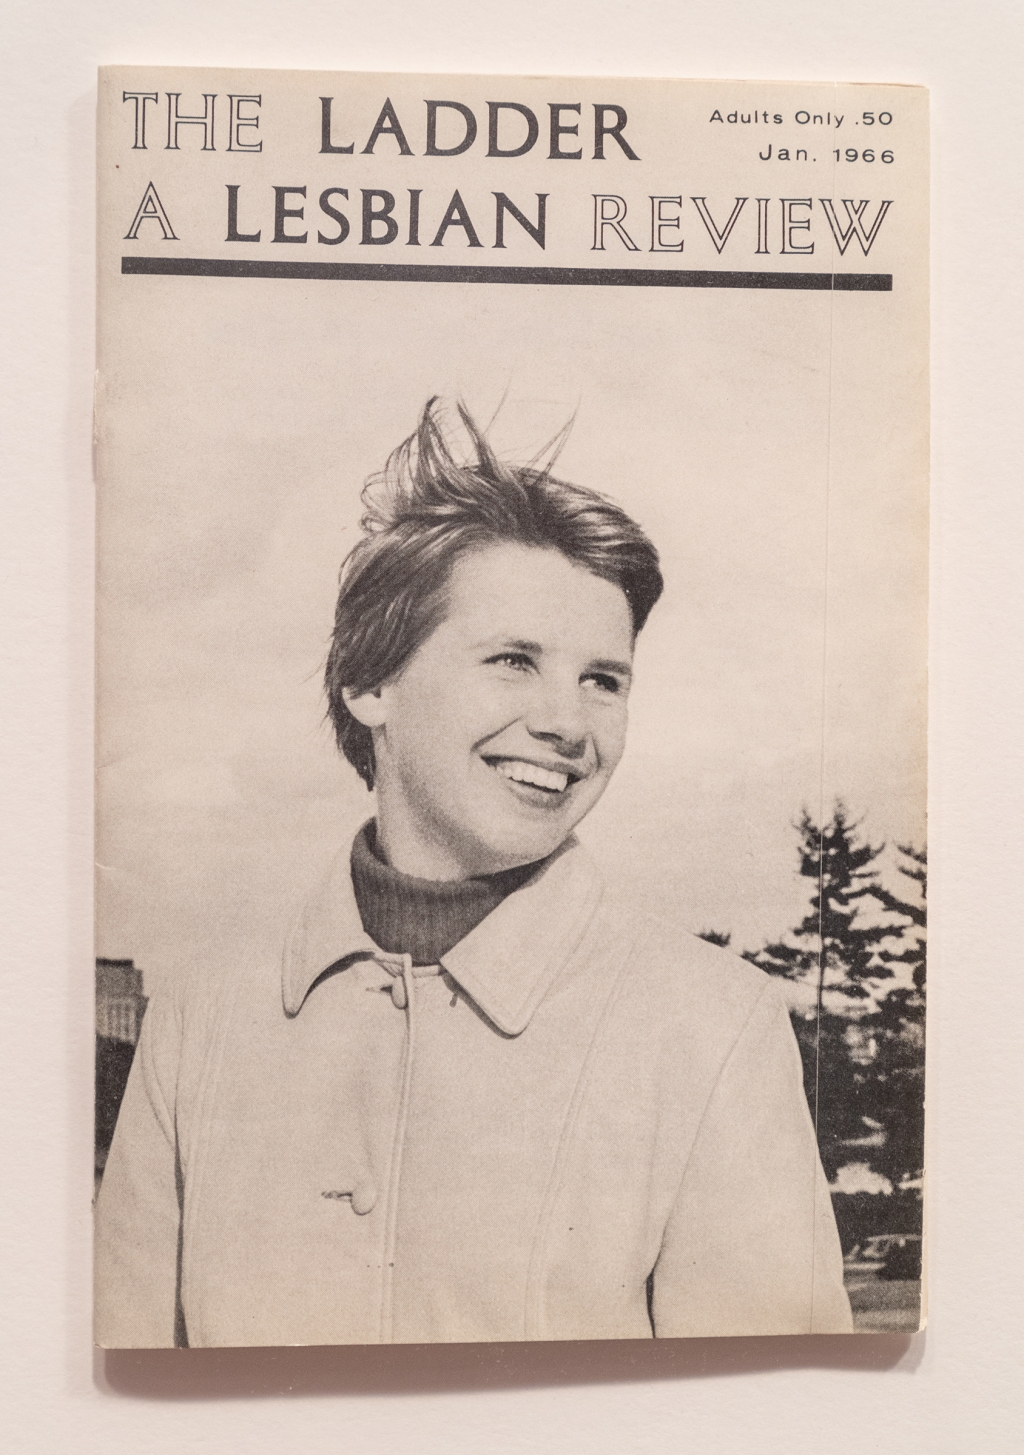 """""""In order to have this political movement, you had to have magazines,"""" says Baumann, """"There's no internet, so how else do people communicate?"""" In the 1960s, every gay rights organization had their own publication. The Daughters of Bilitis published The Ladder every month from 1956 to 1970. Before Kay Tobin Lahusen took over as the photo editor, the cover was typically a cartoon or a woman in silhouette. In the mid-1960s, Lehusen started putting out-lesbians' faces on the cover of the magazine. """"I think it would be hard to see how radical this picture is because it's this 'Ellen' sort of image,"""" says Baumann. """"She's the first out american lesbian to be on a cover of a magazine. But this is also the first [picture of a] happy lesbian in American history. There are no happy depictions of lesbians prior to this picture — lesbians were depicted as homicidal, mentally ill. So it's really revolutionary."""""""